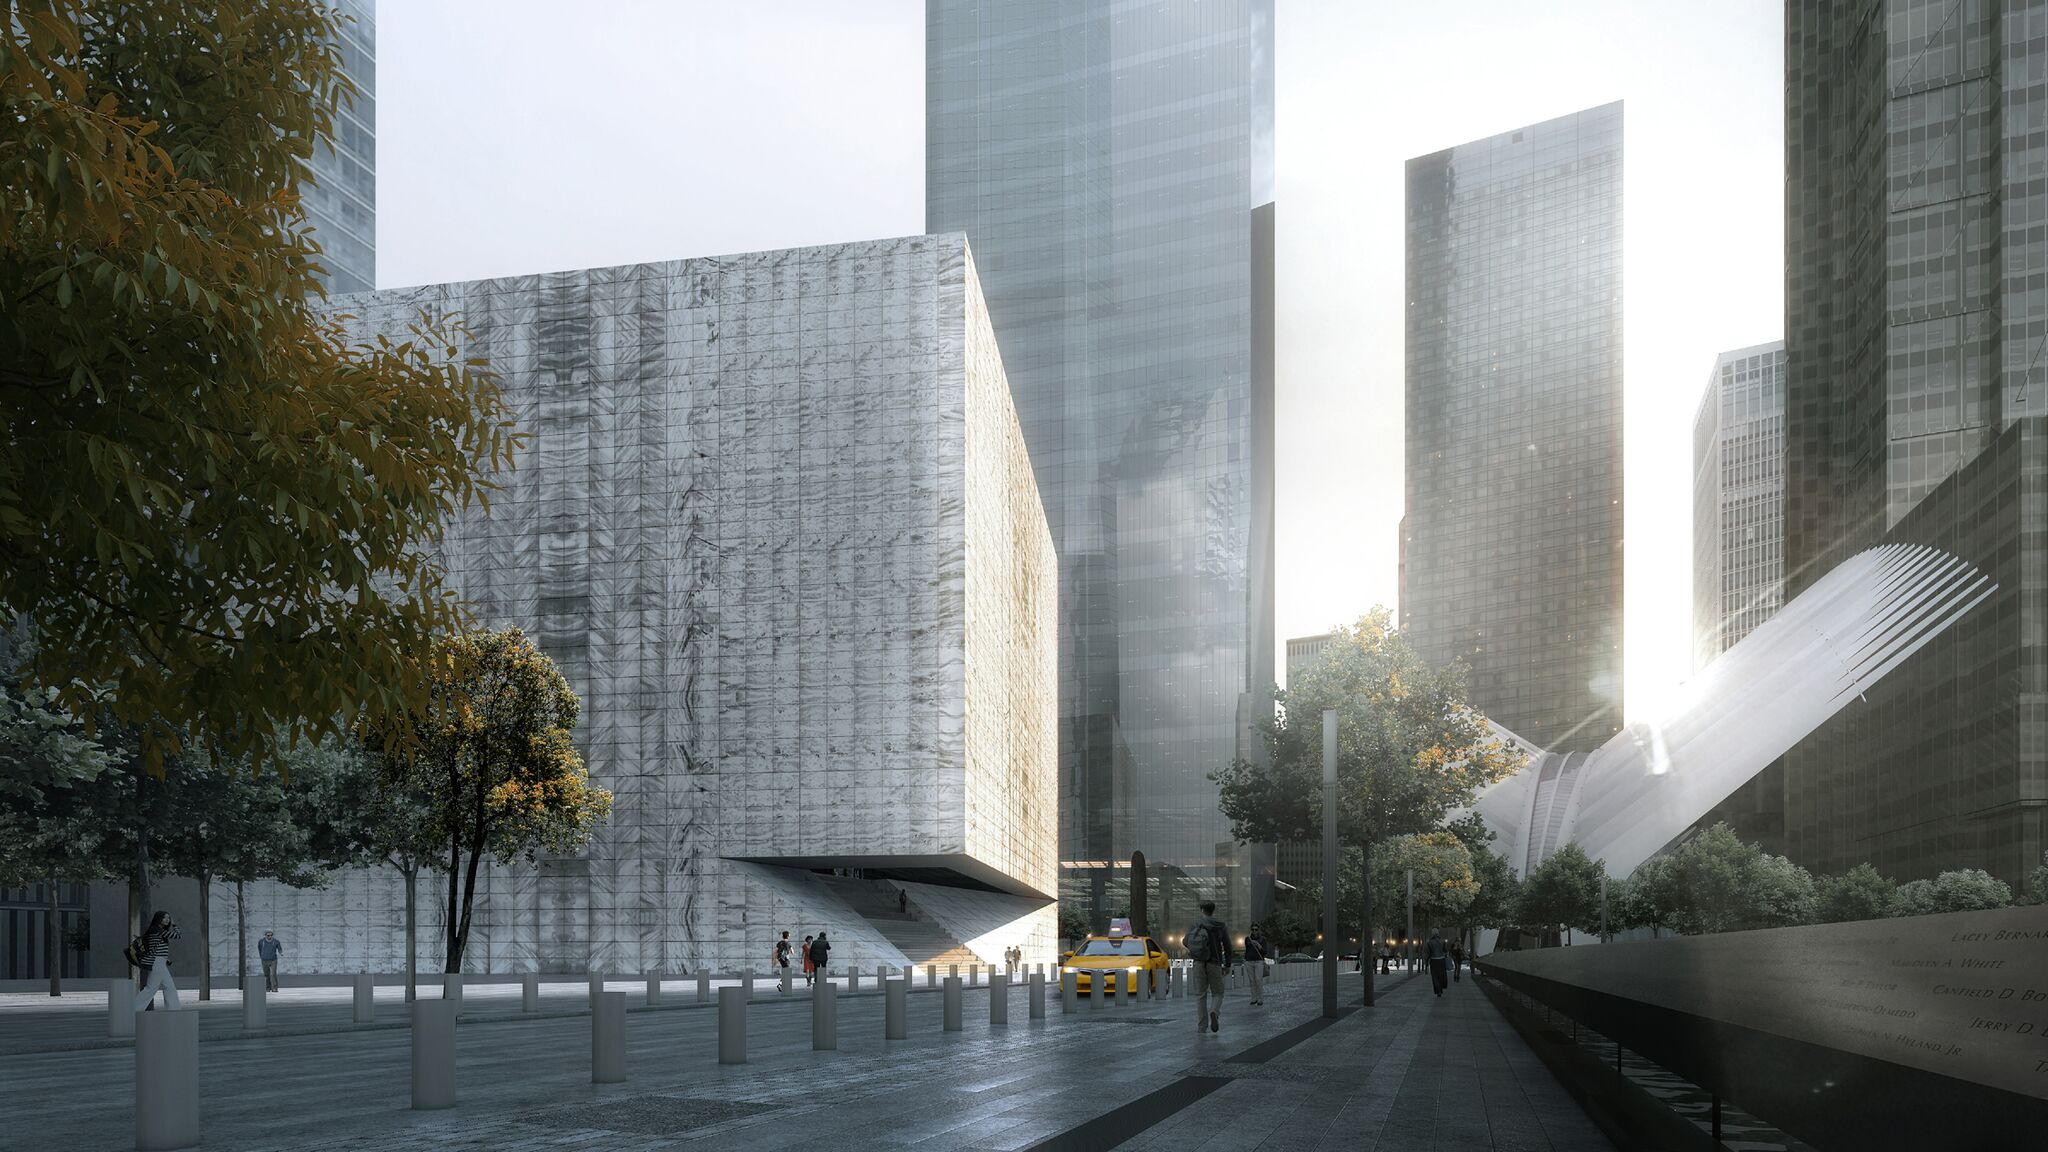 WTC arts center design: Translucent marble and glass cube